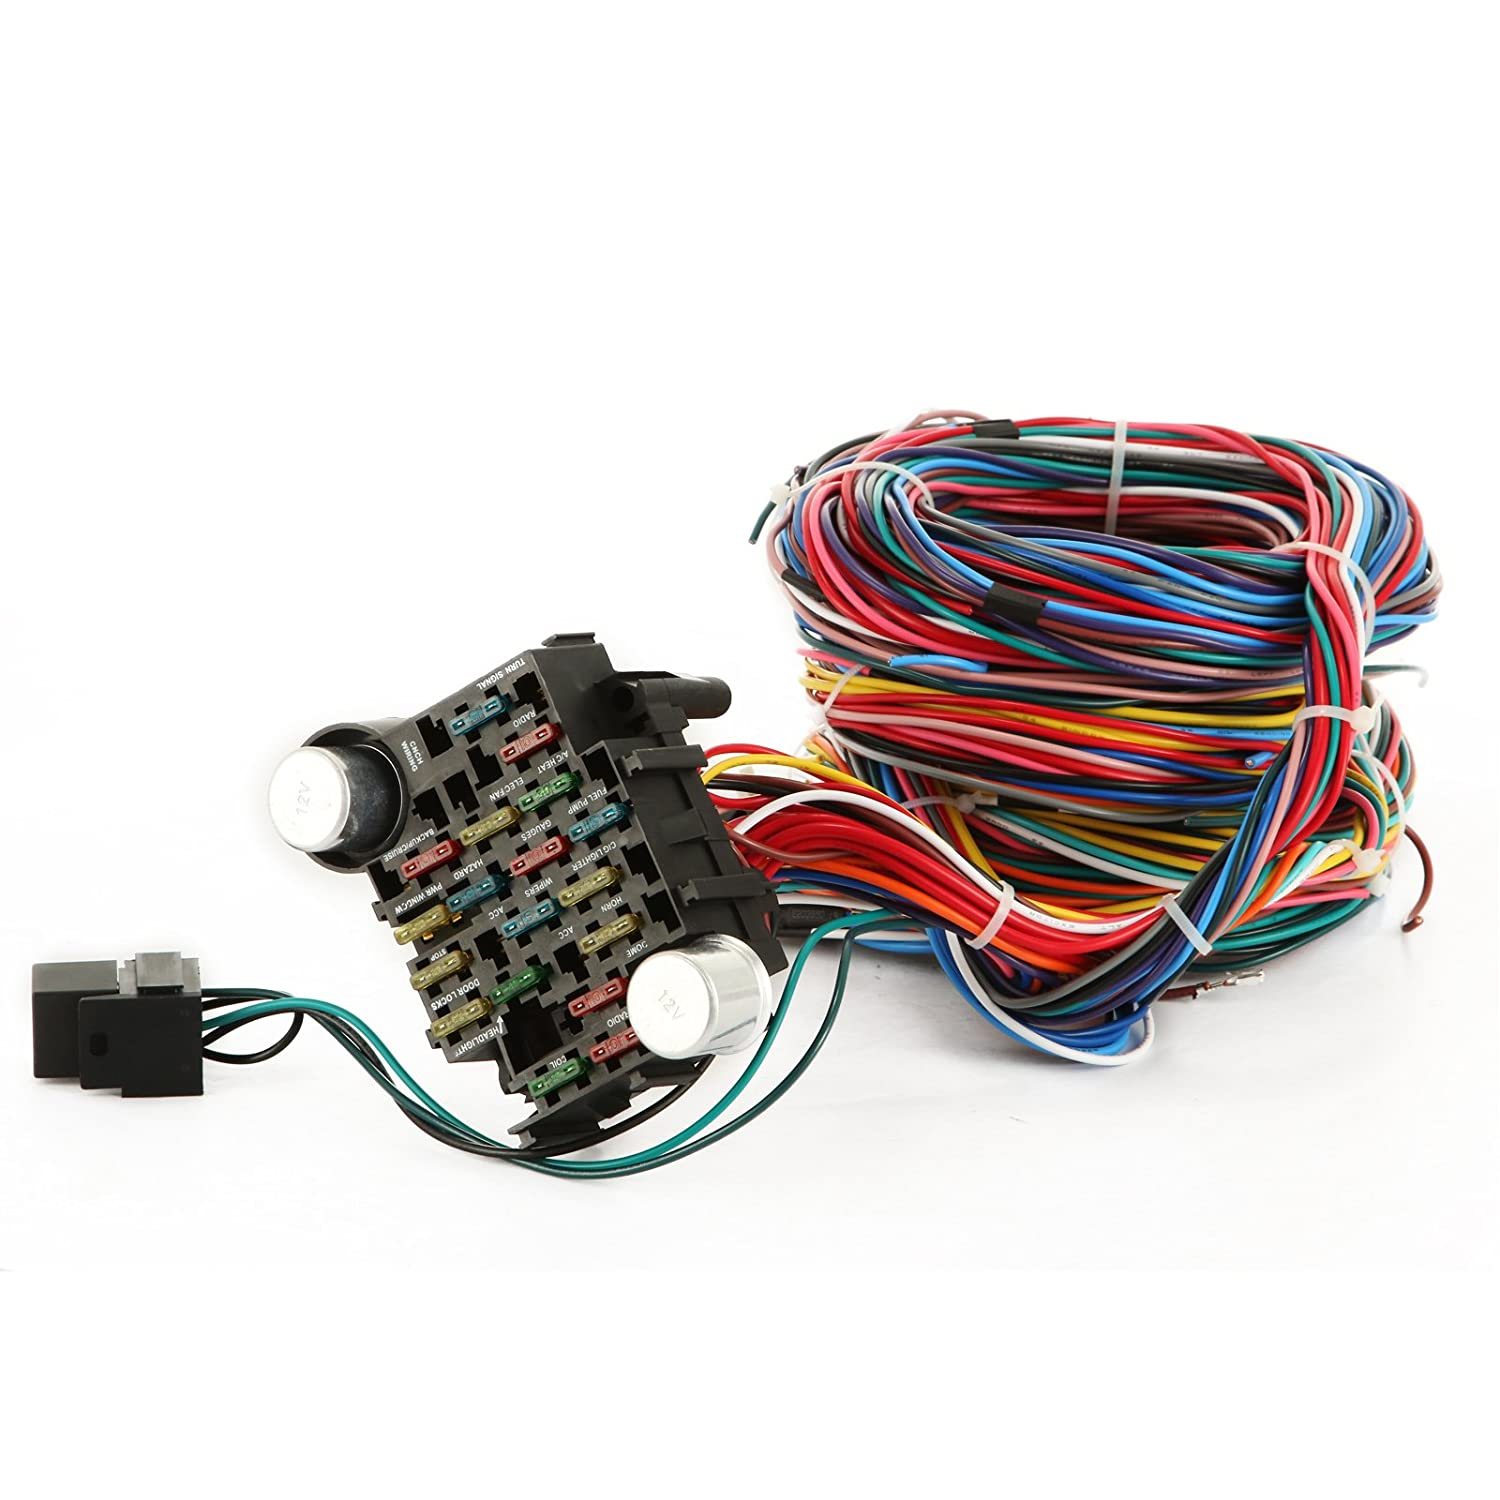 Mophorn 21 Circuit Wiring Harness Kit Long Wires Ez Ignition Switch Standard Color For Chevy Mopar Hotrods Ford Chrysler